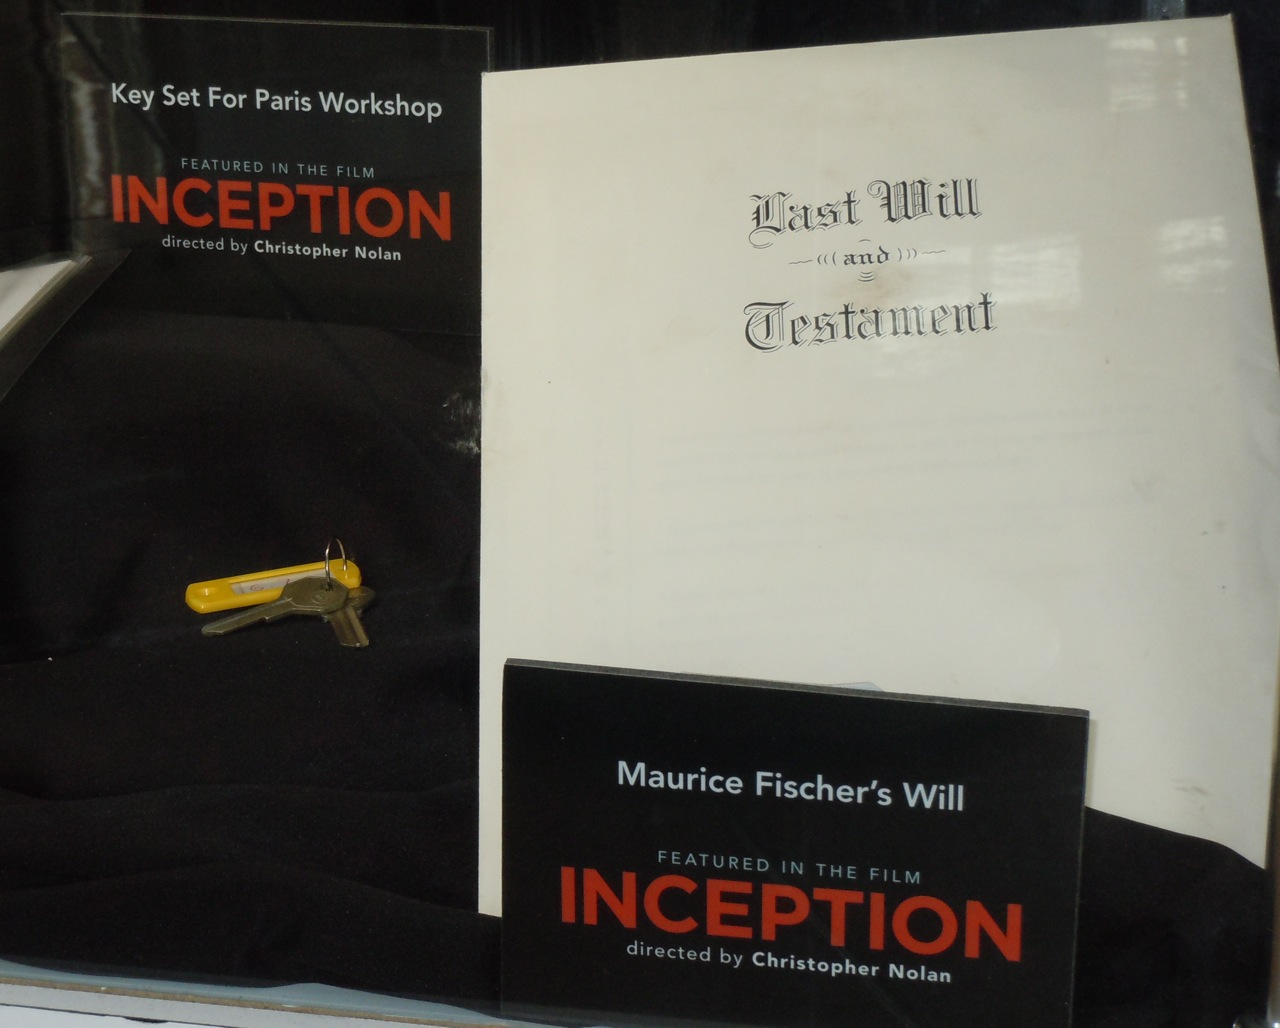 Hollywood Movie Costumes and Props Inception movie costumes worn by